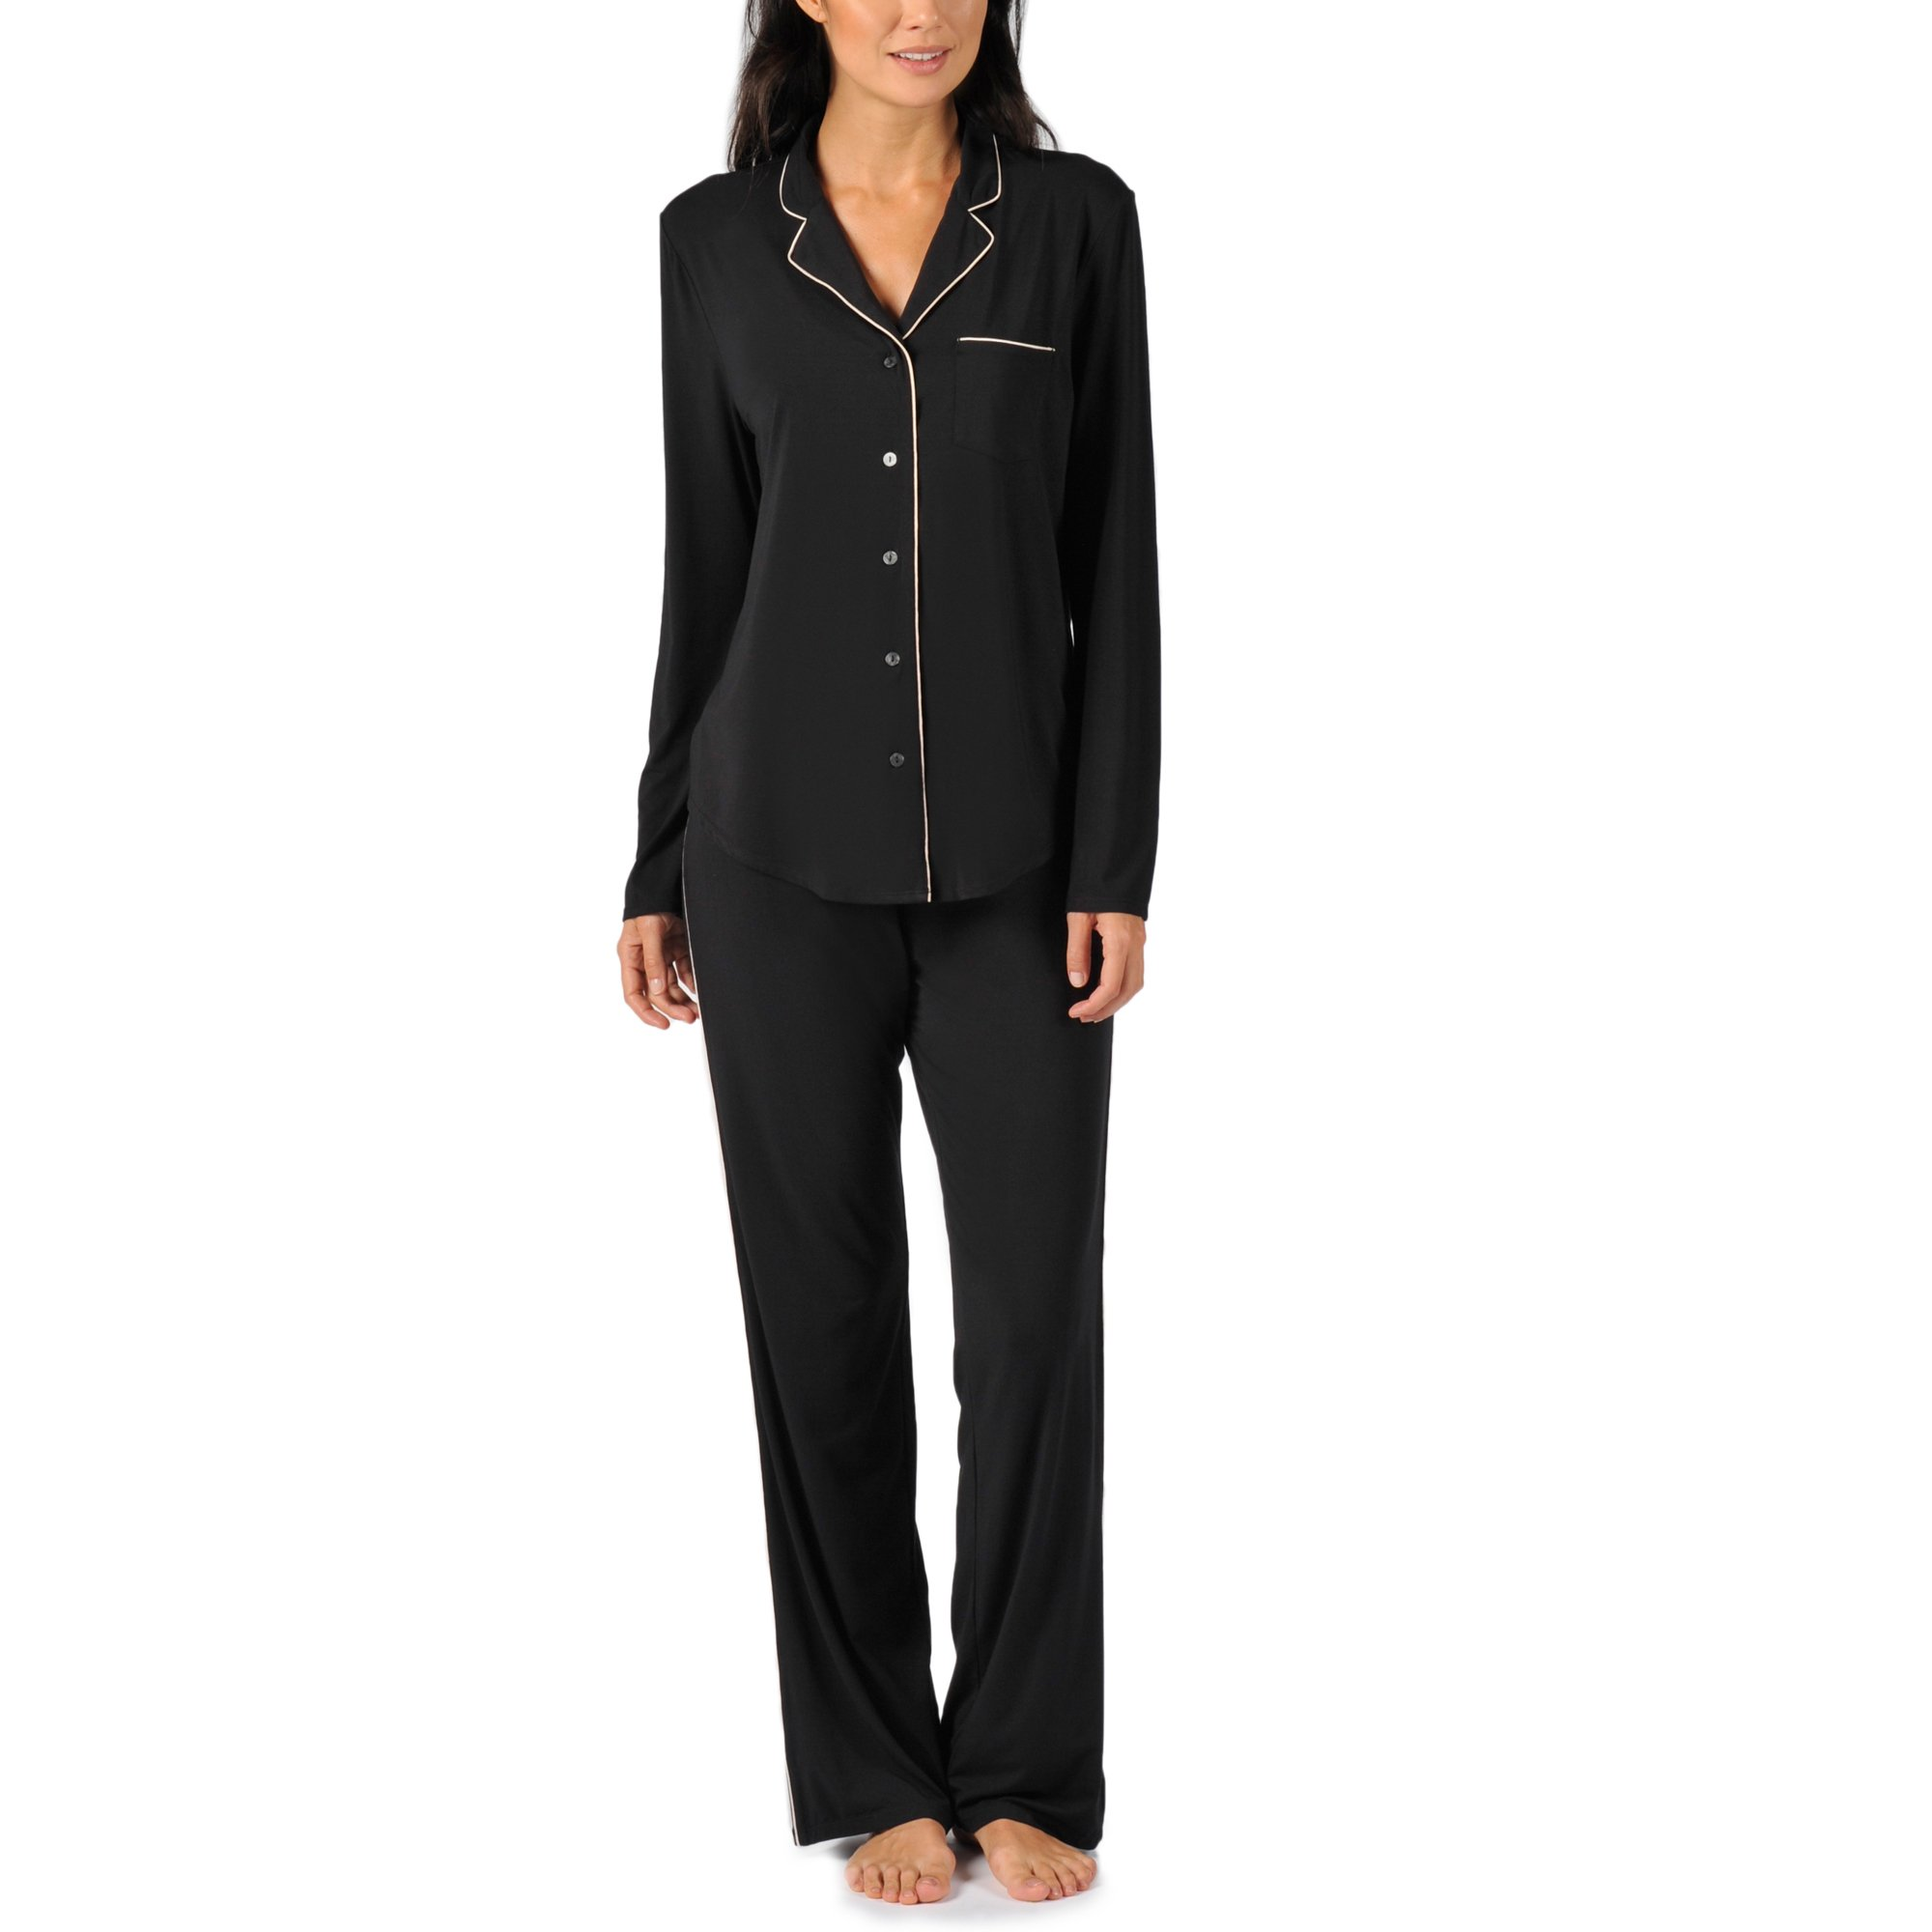 Naked Women's MicroModal Luxury Pajama Set - Sleepwear & Loungewear For Women - Black, Large